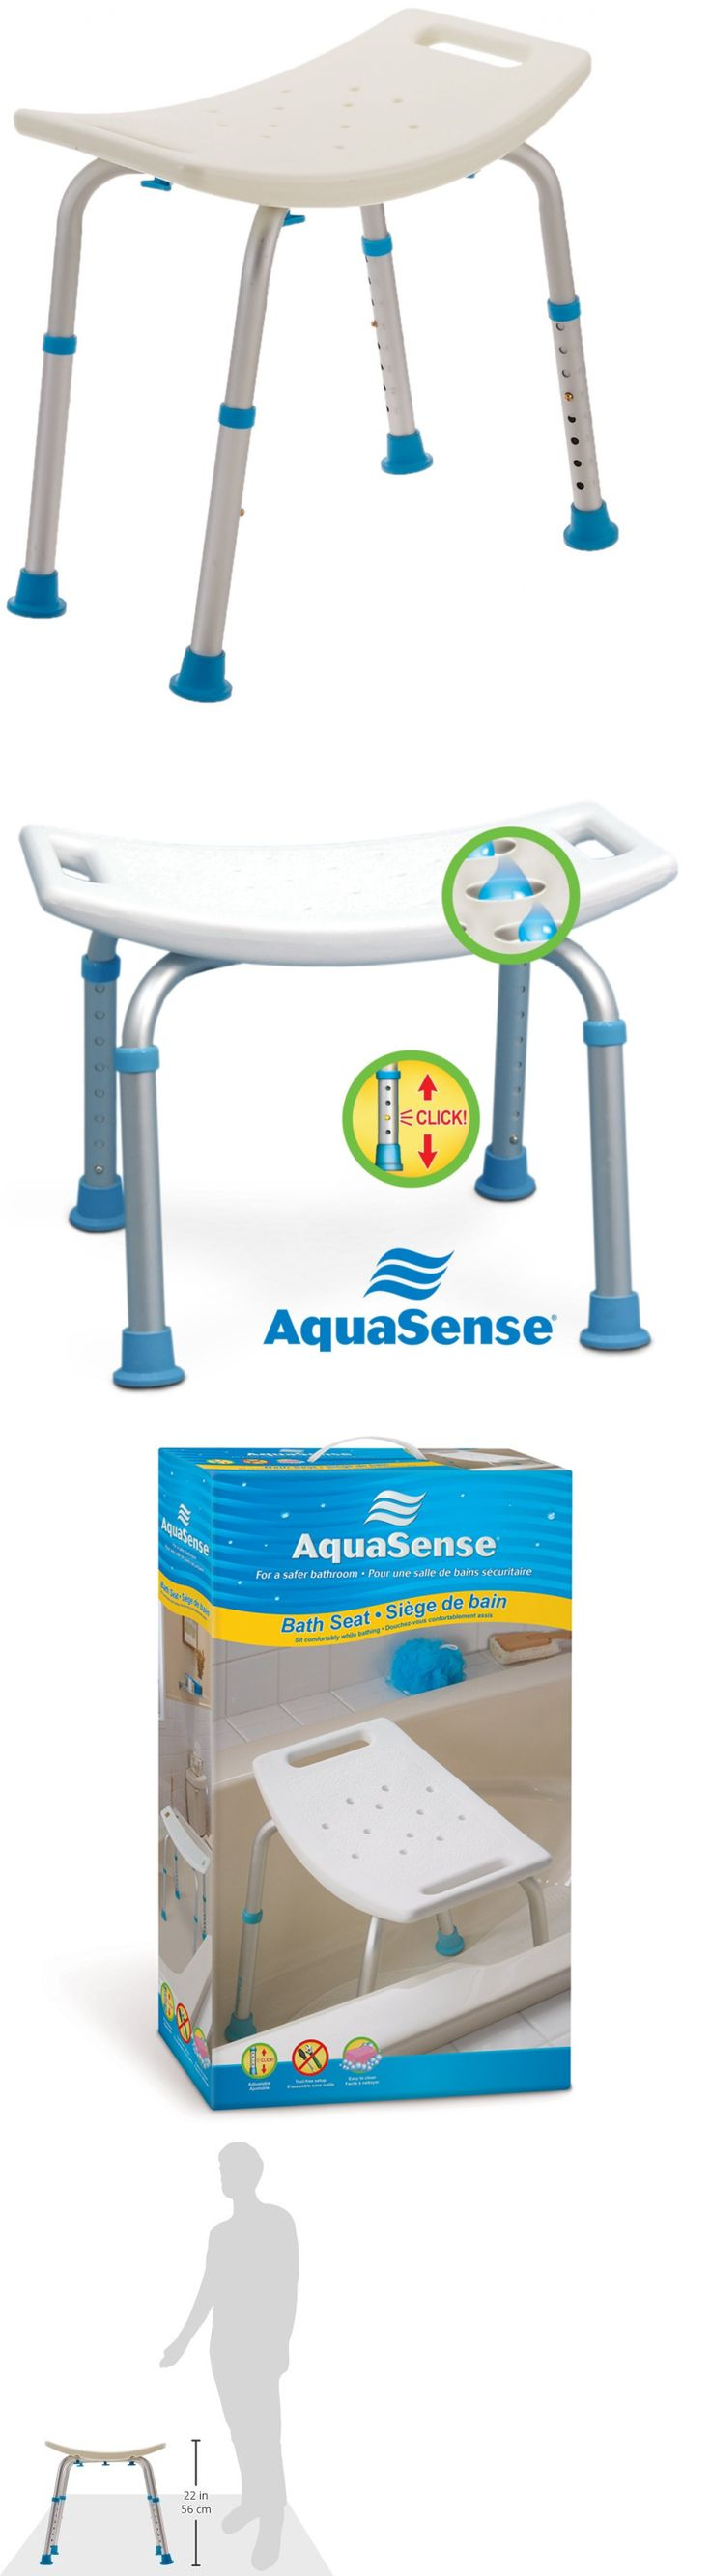 best 25 shower chair ideas on pinterest shower seat nautical shower and bath seats aquasense adjustable bath and shower chair with non slip seat